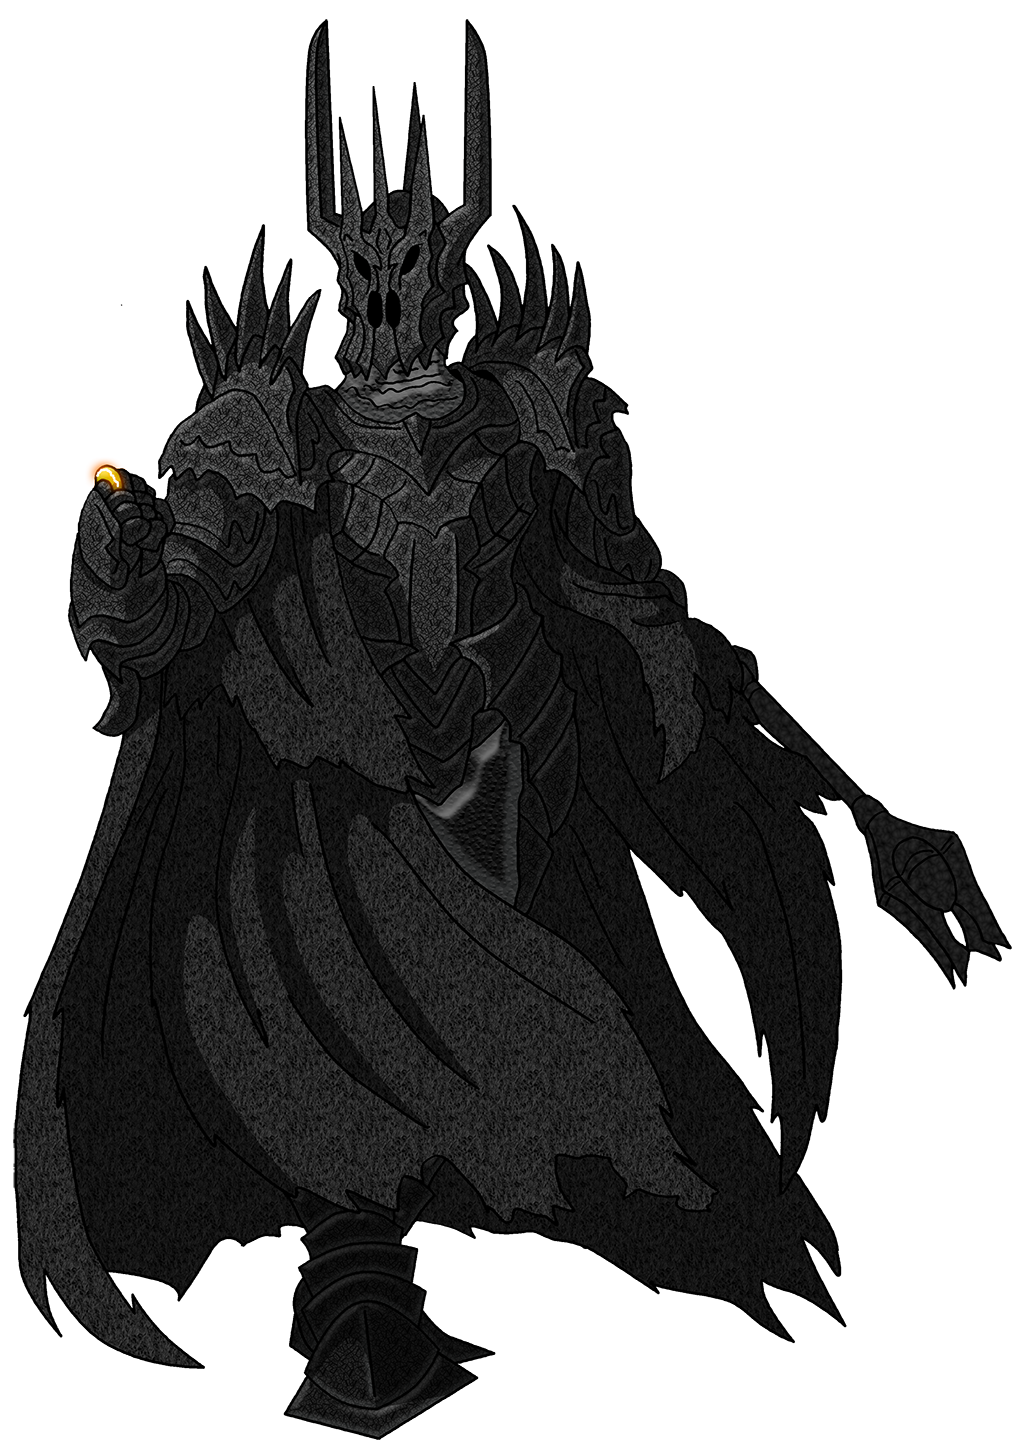 one for the dark lord on his dark throne by unoservix